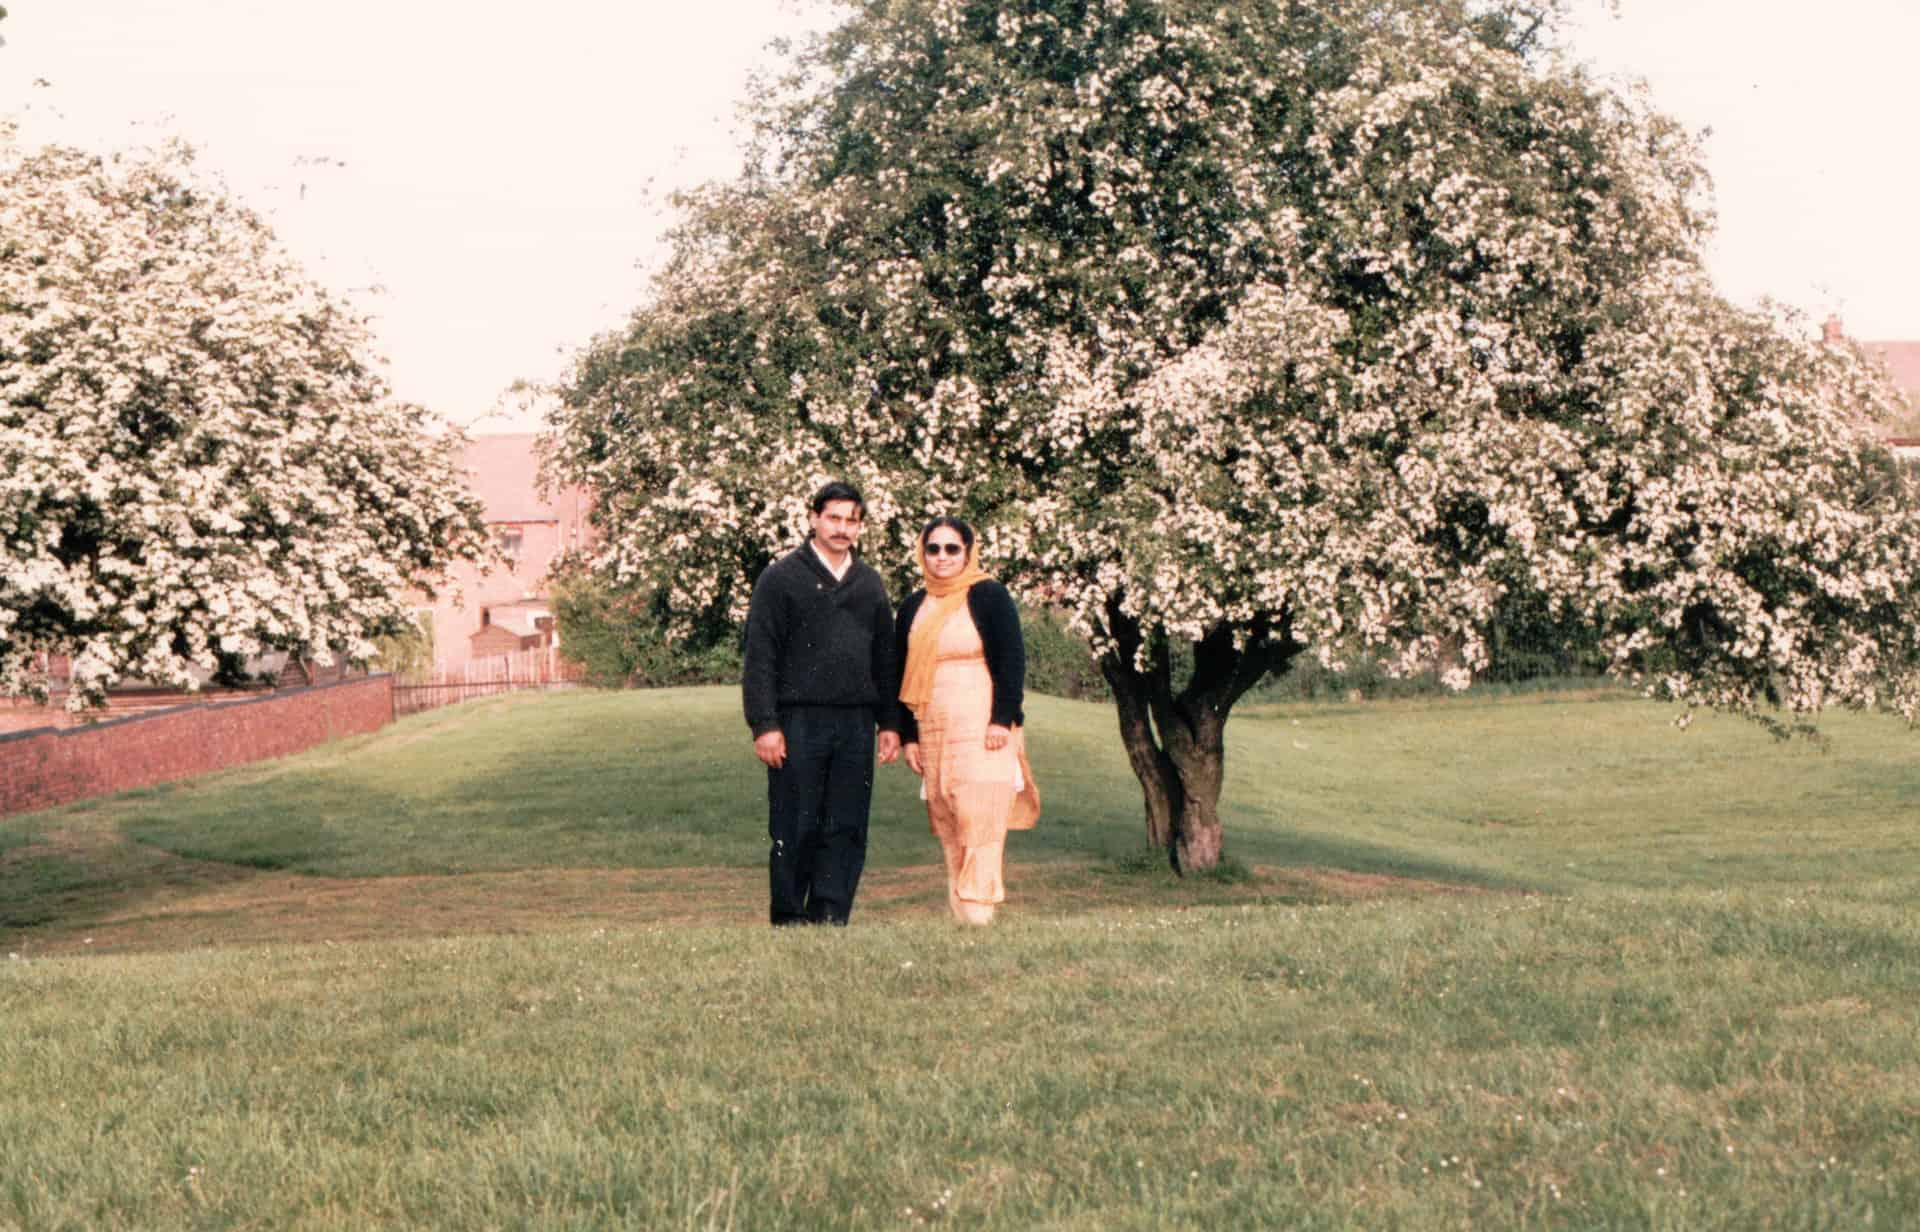 That was me and my husband on the second day of our marriage. We are out for a walk  in Tividale Park.